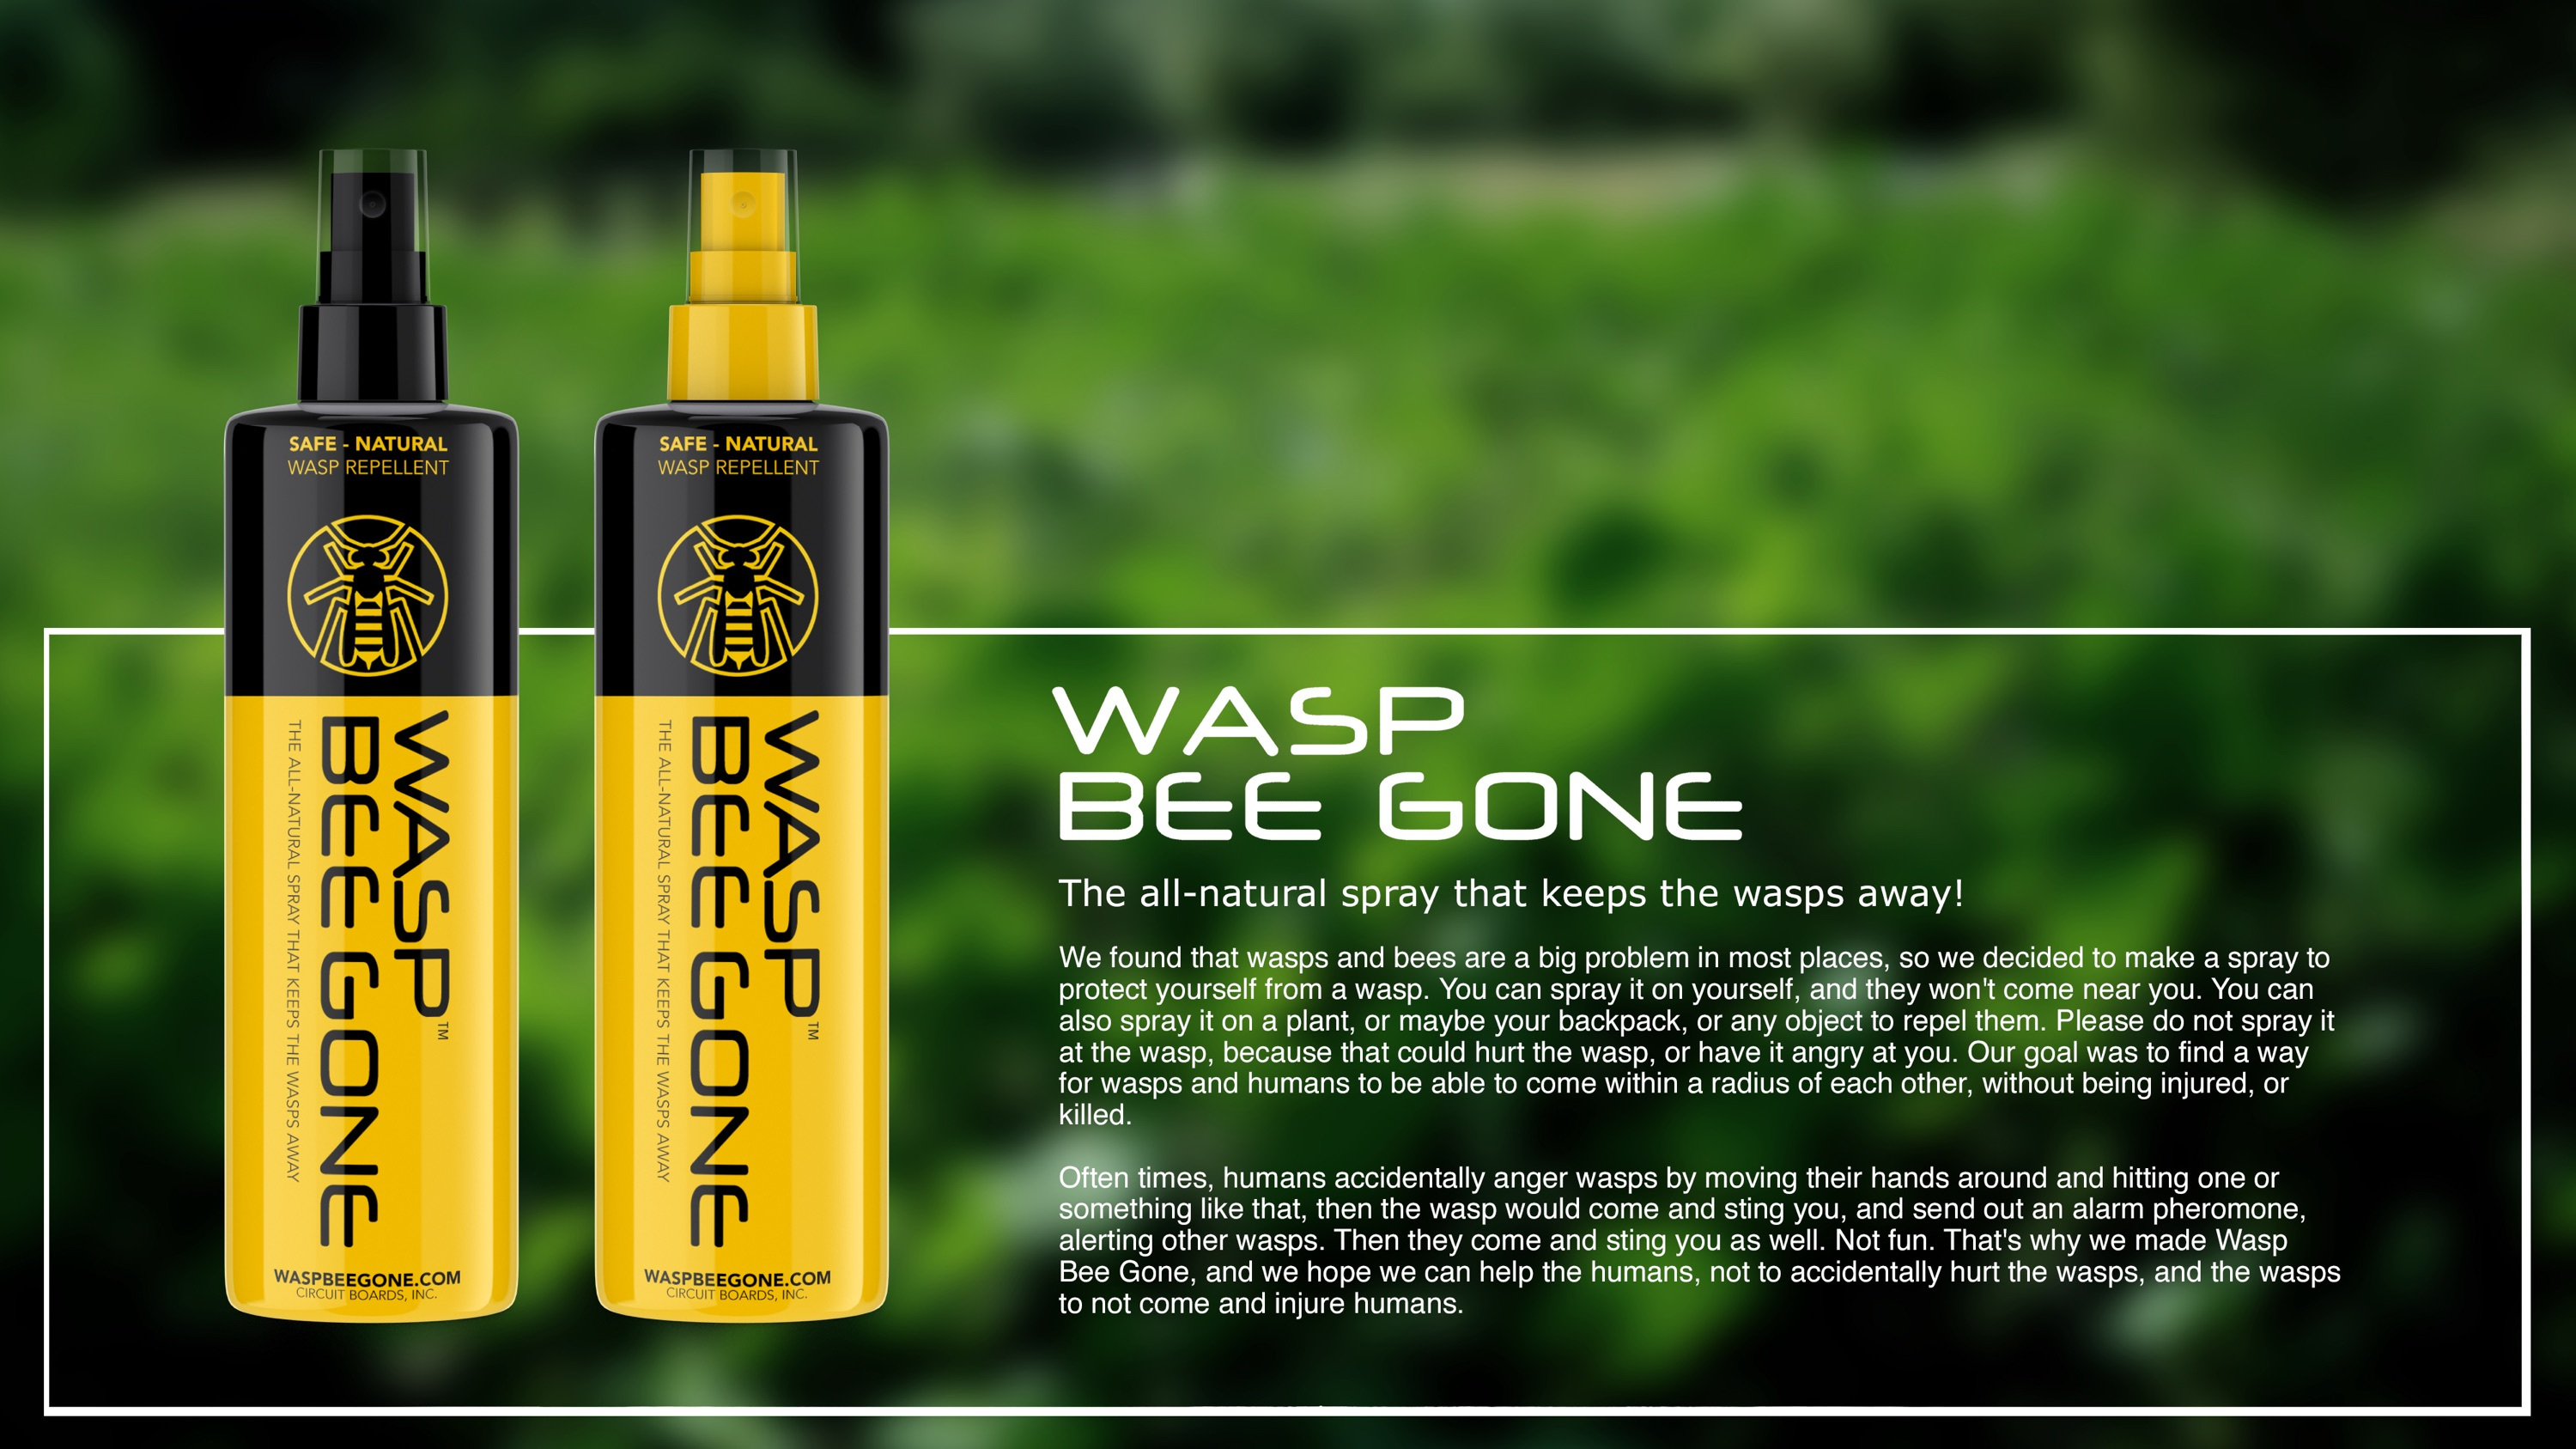 WaspBeeGone – The all-natural spray